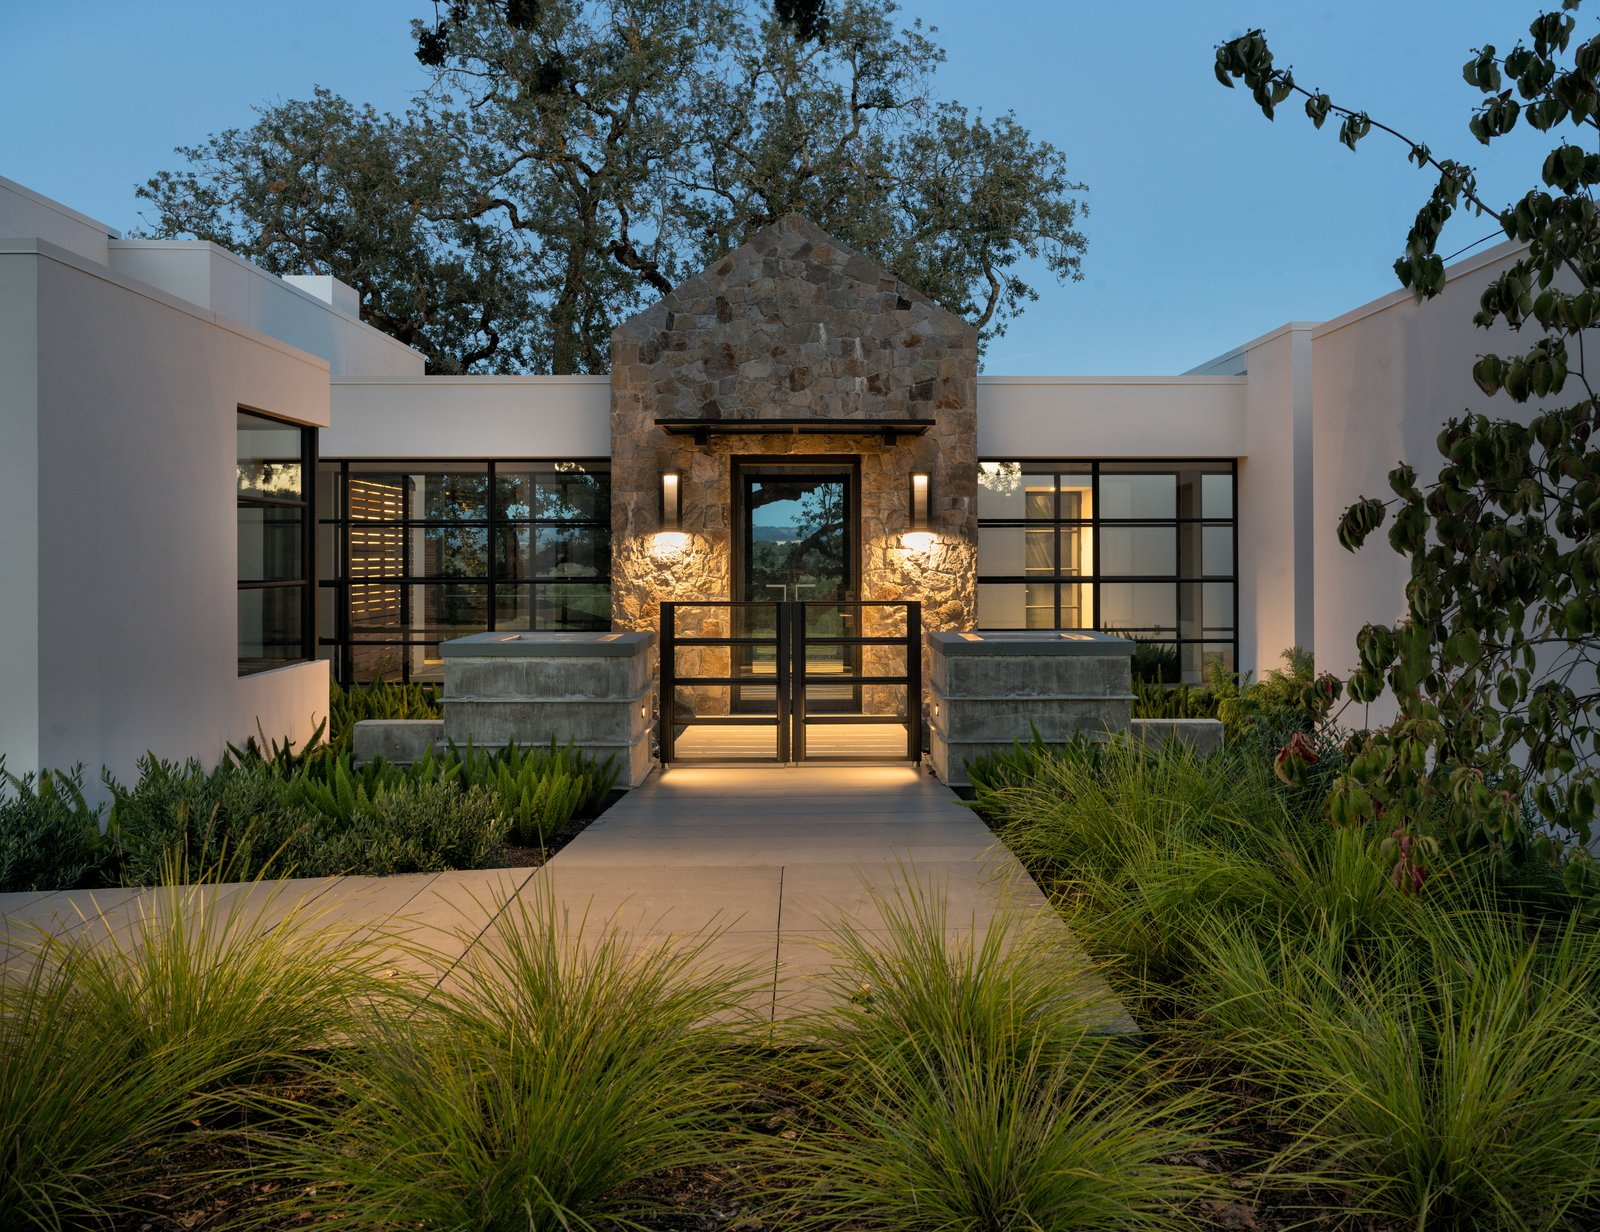 A warmly welcoming entrance to the home Tagged: Outdoor, Trees, Grass, Shrubs, Landscape Lighting, Concrete Patio, Porch, Deck, Hardscapes, Back Yard, and Garden. Hilltop Haven by Randy Thueme Design